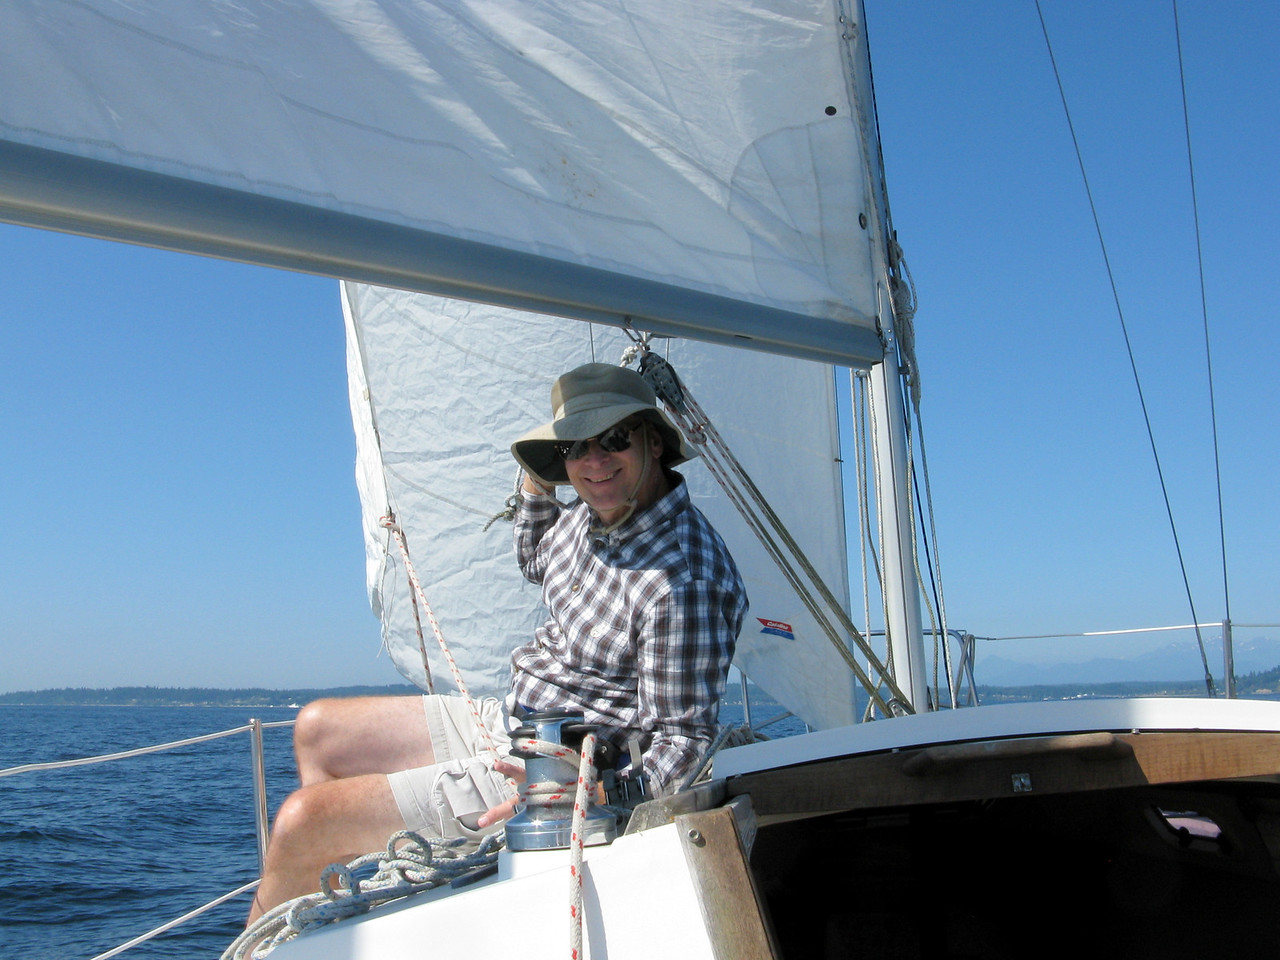 On Saturday, August, 11, we sailed across the sound from Edmonds to Kingston.  Marc is sitting under the sails.